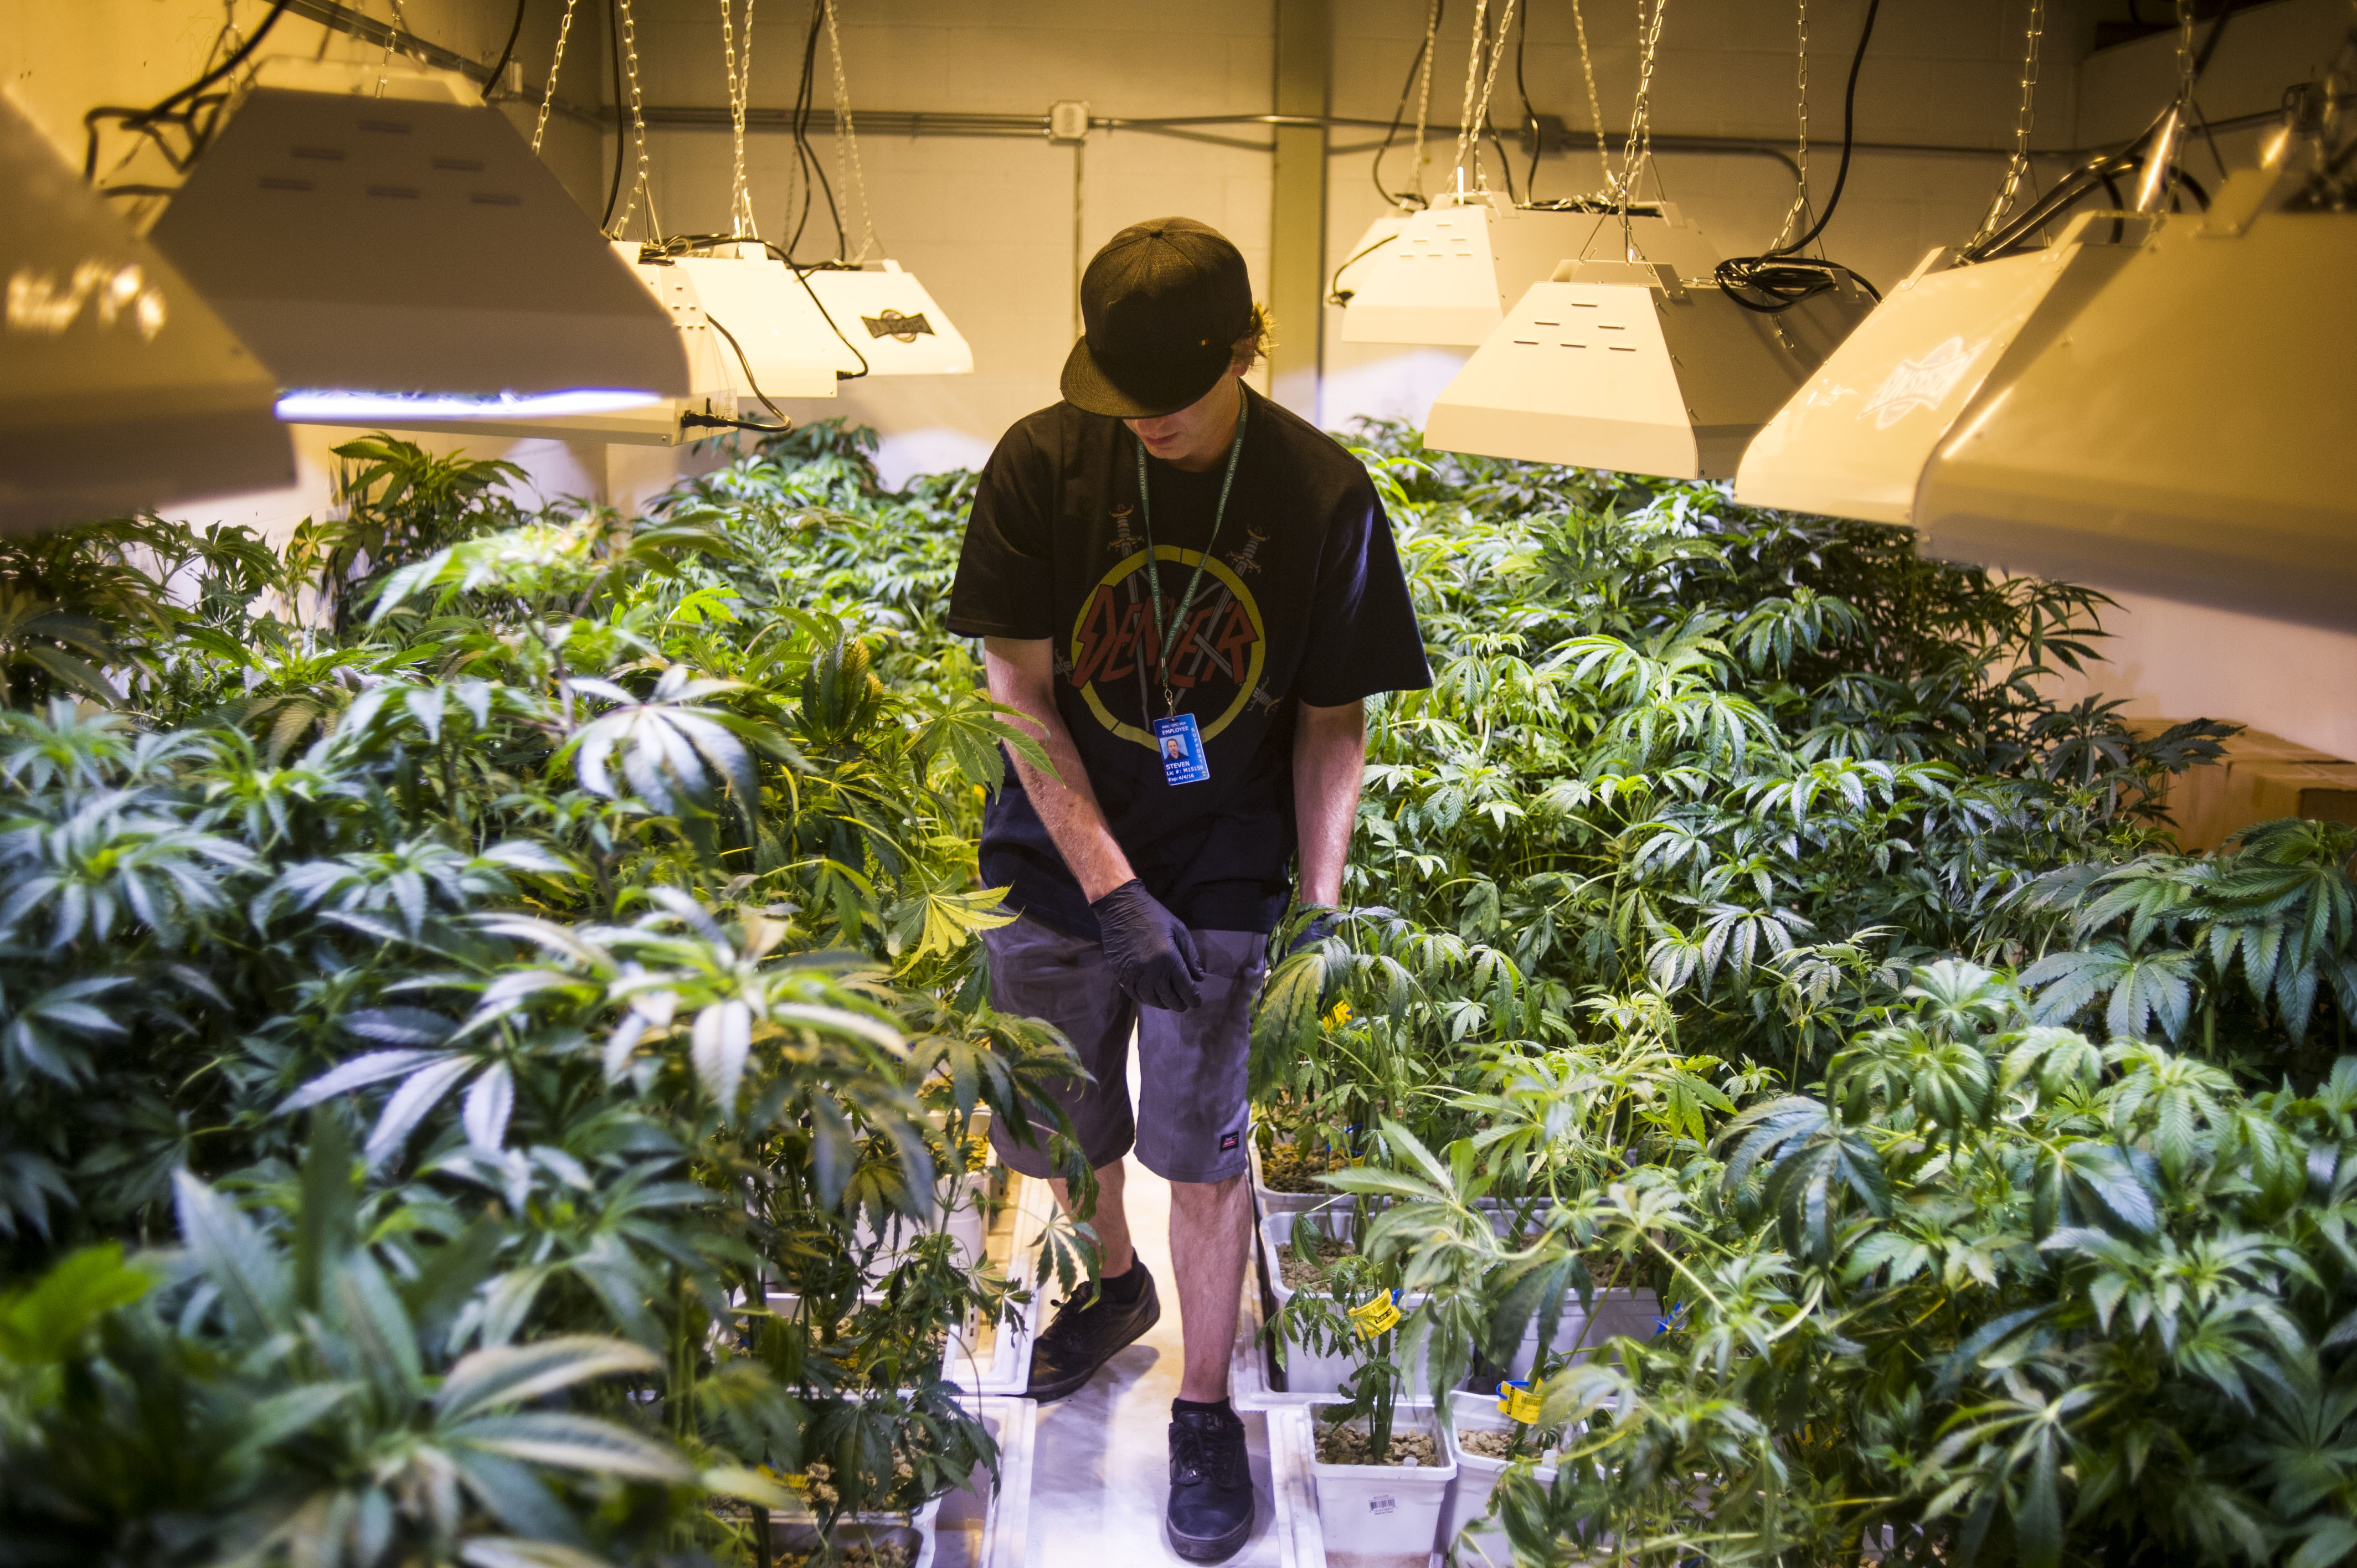 Steve Herin, Master Grower at Incredibles, works on repotting marijuana plants in the grow facility on Wednesday, August 13, 2014 in Denver, Colorado.